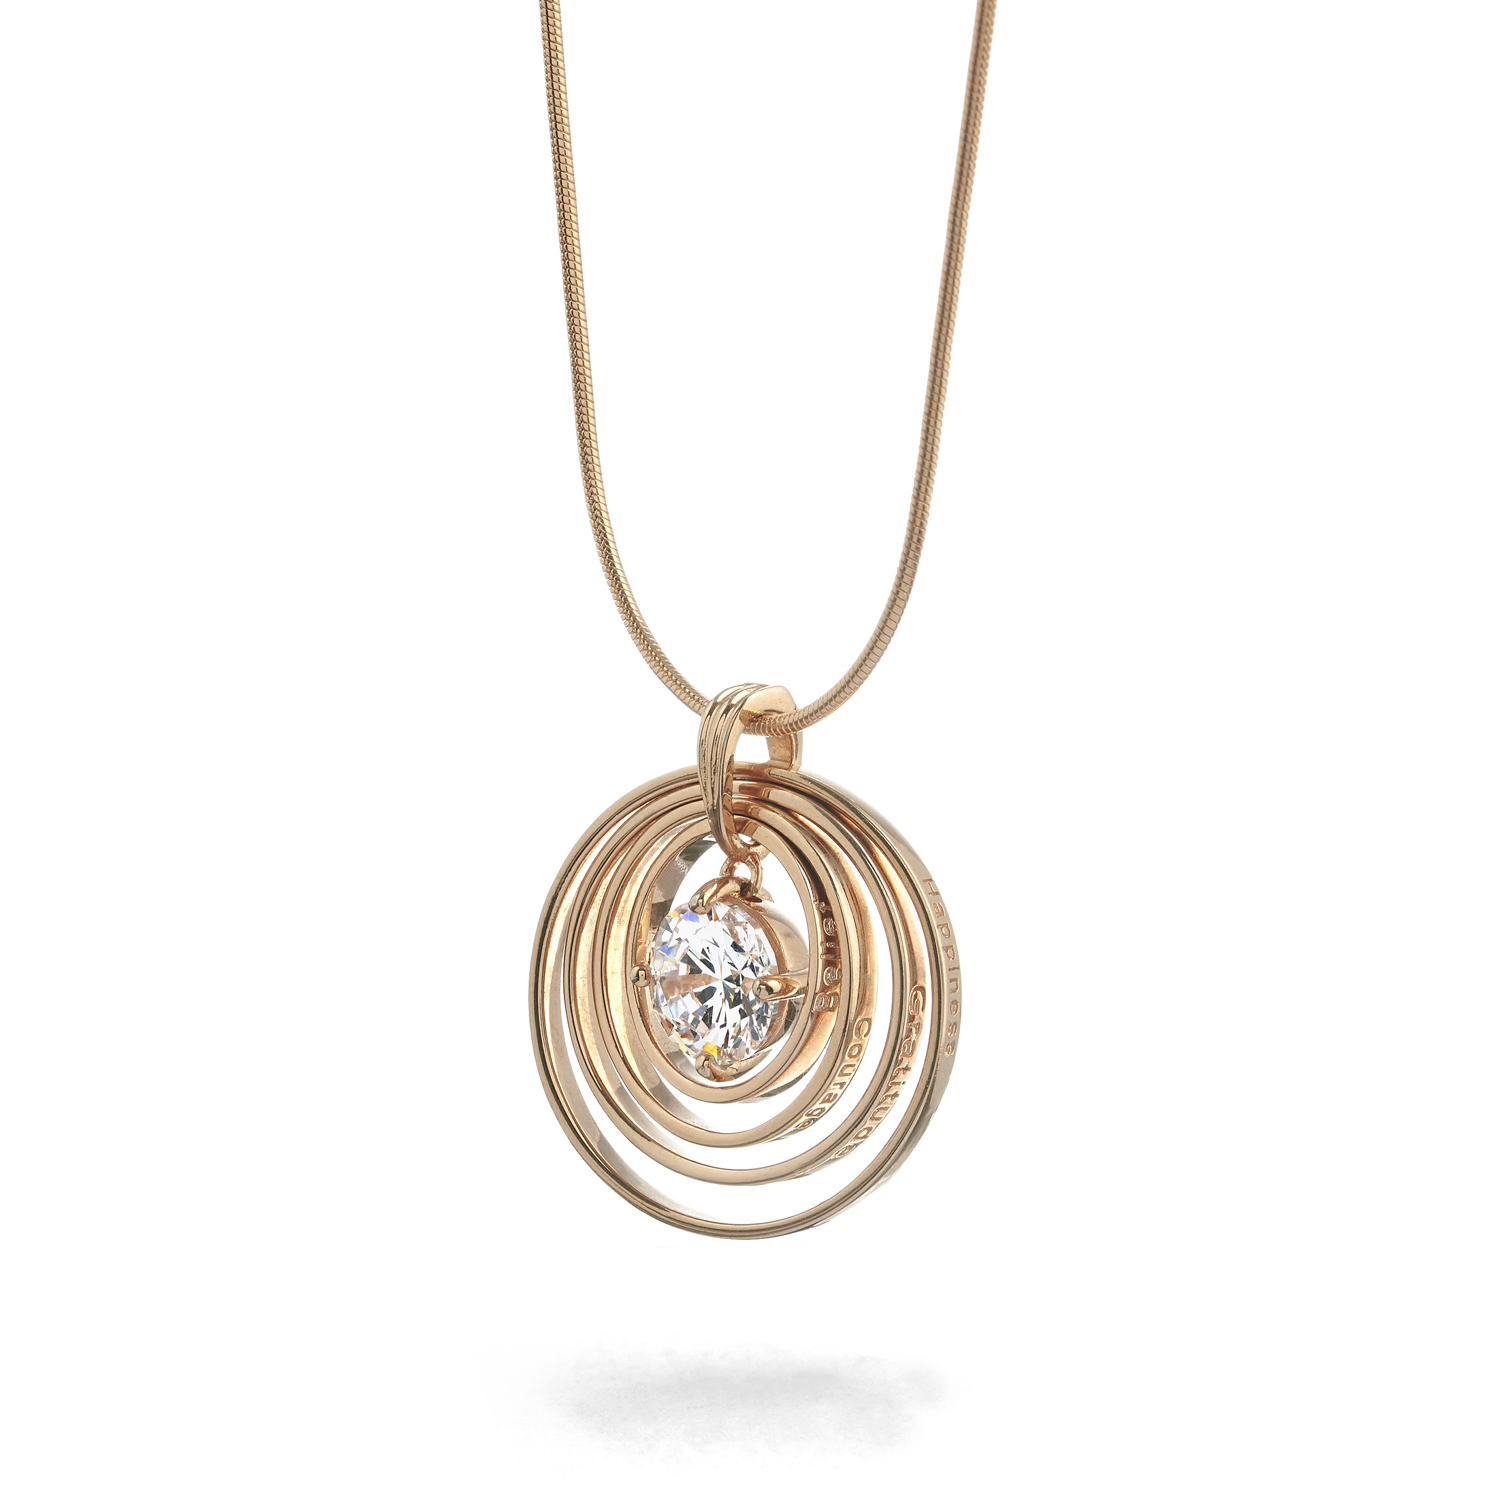 The complete synergy necklace in rose gold